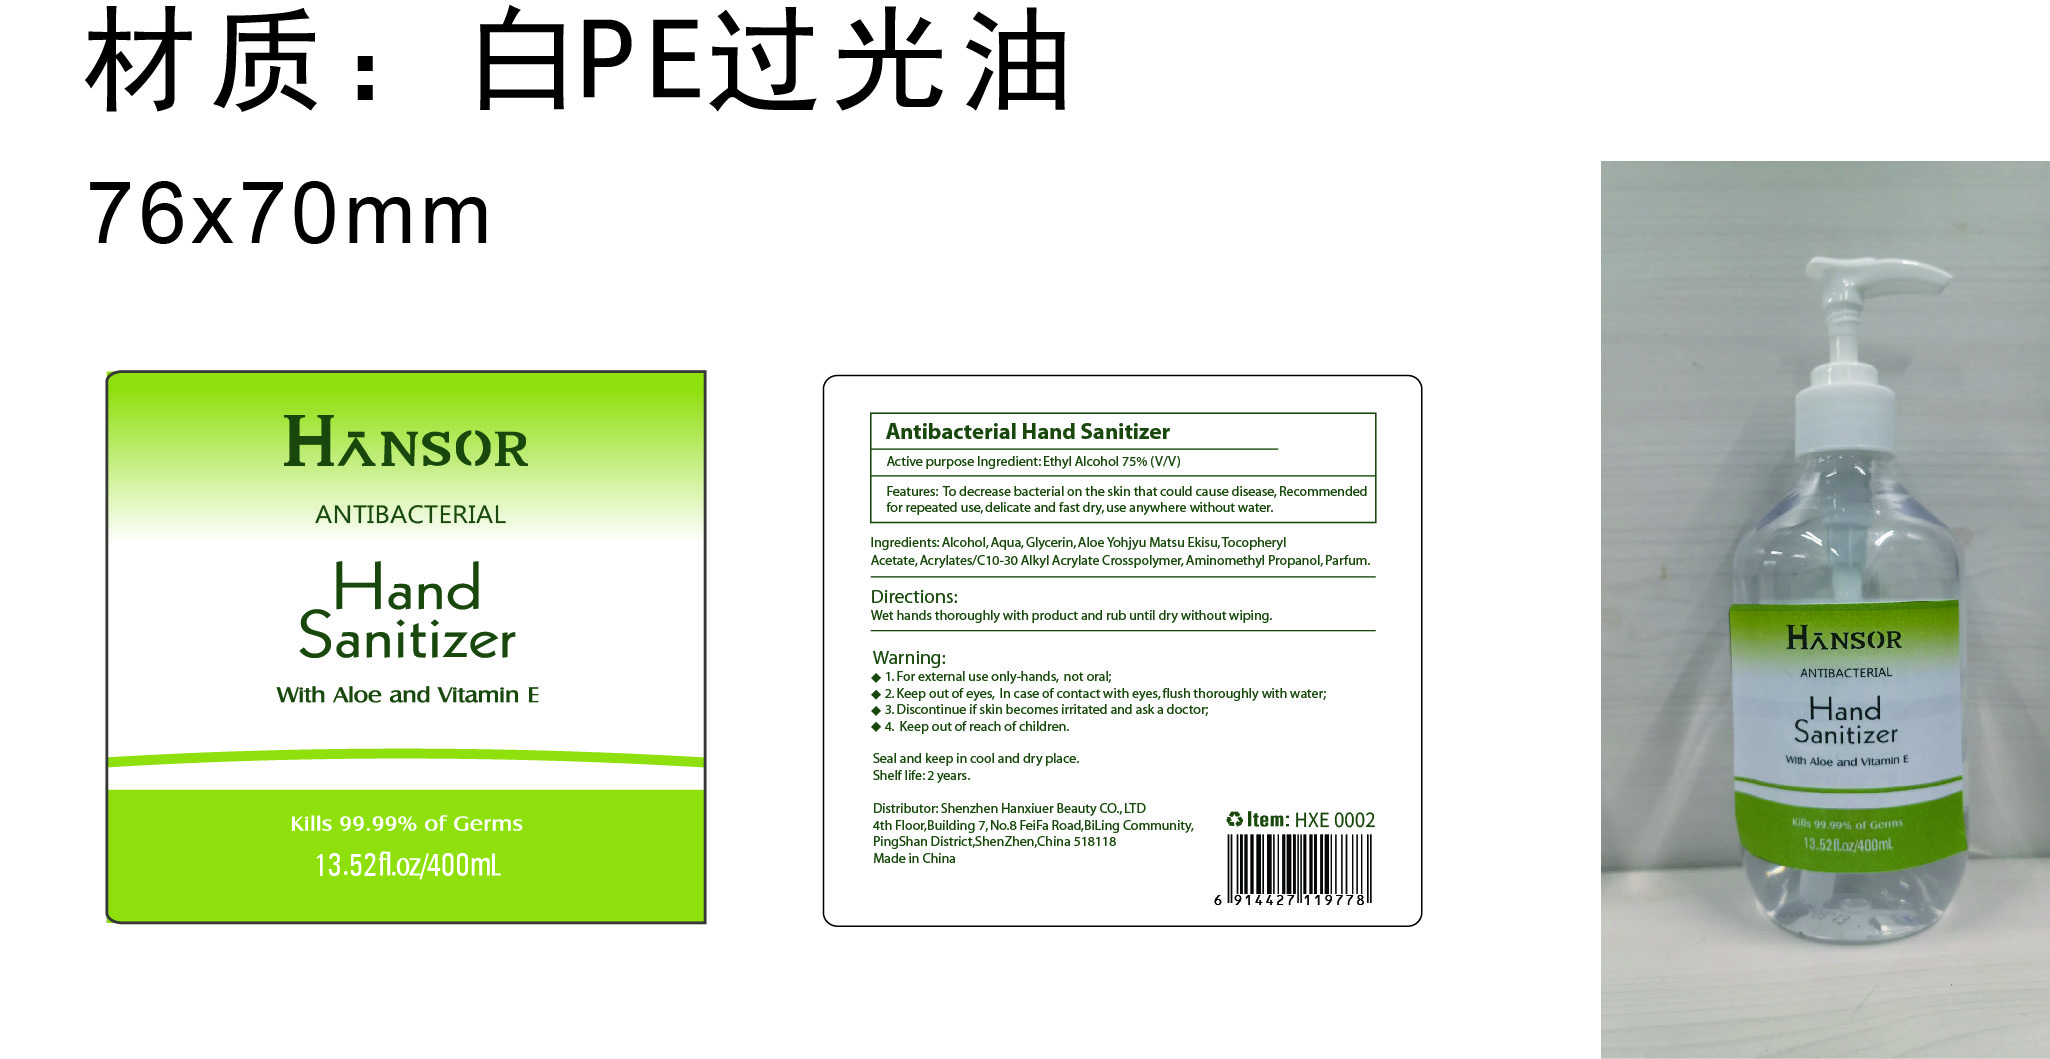 antibacterial hand sanitizer with aloe and Vitamine E